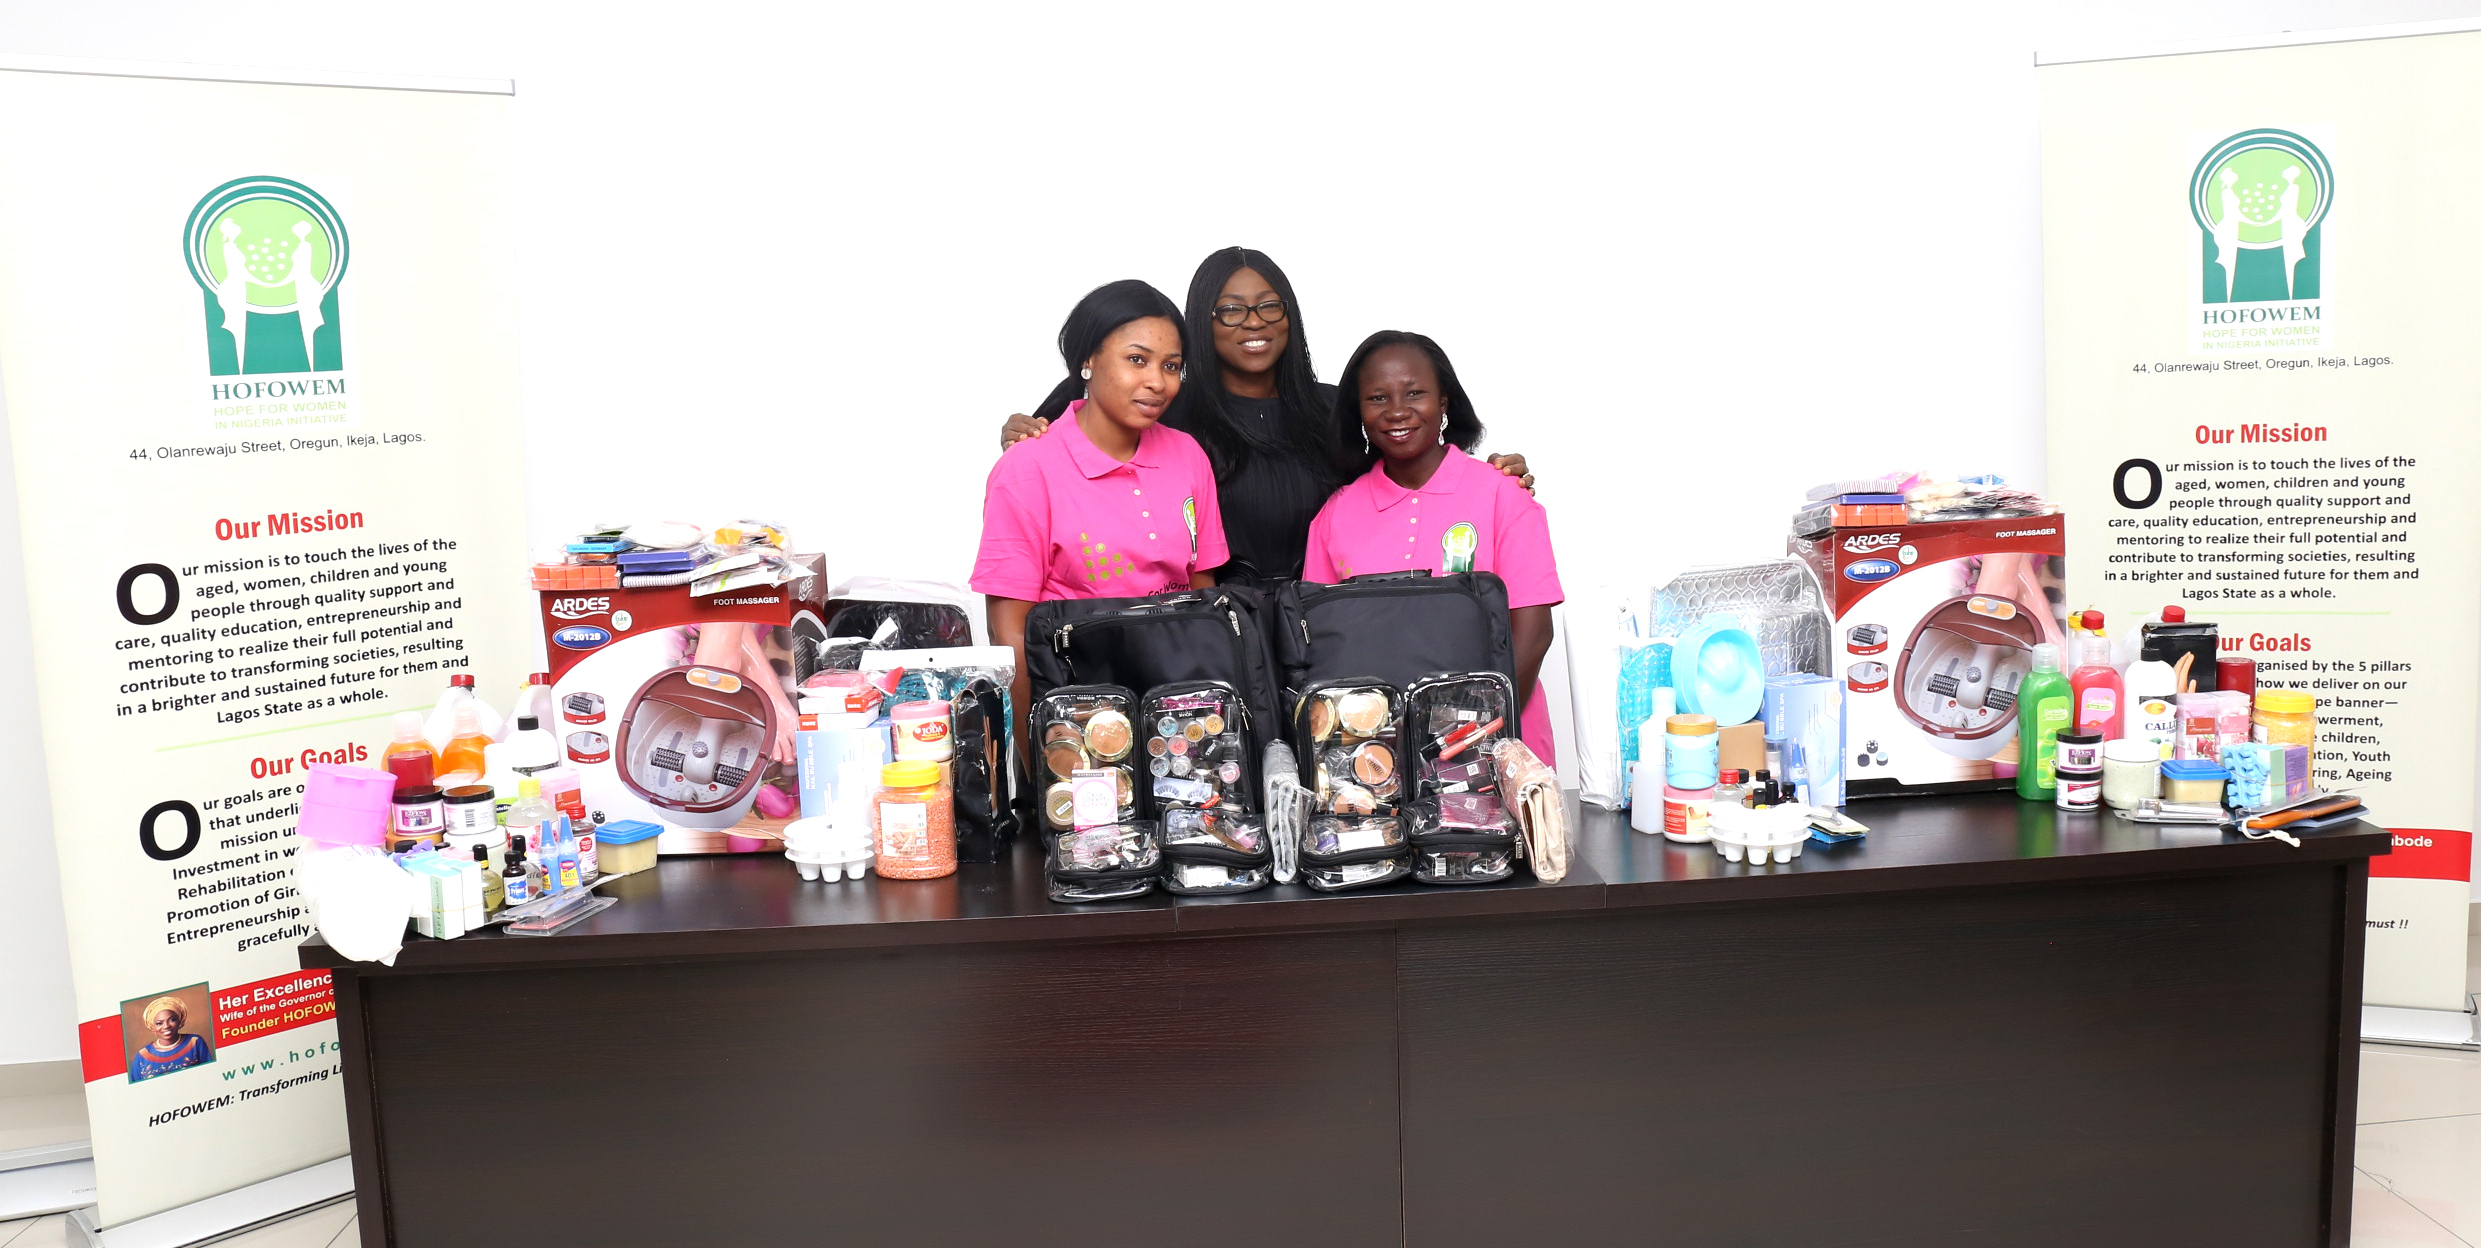 Our Founder, Her Excellency, Mrs. Bolanle Ambode presenting work kits to the beneficiaries.